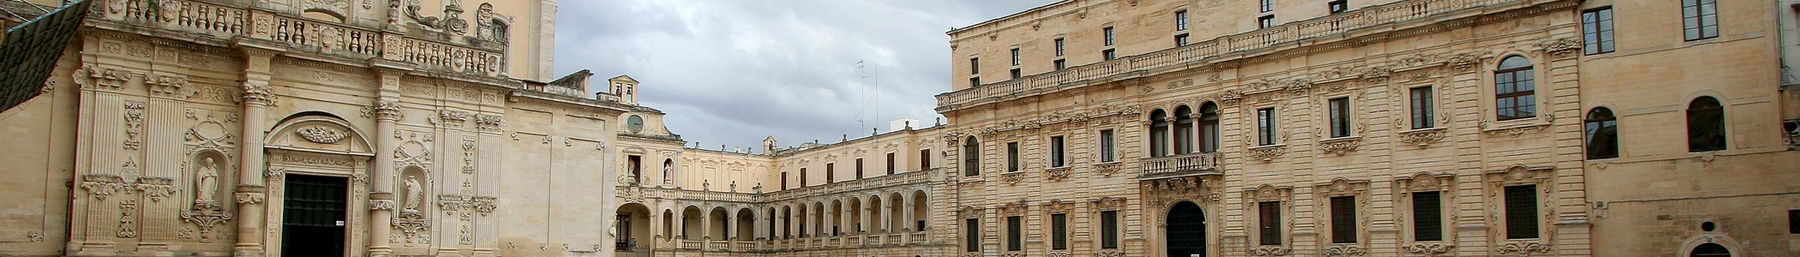 Lecce banner Cathedral.jpg